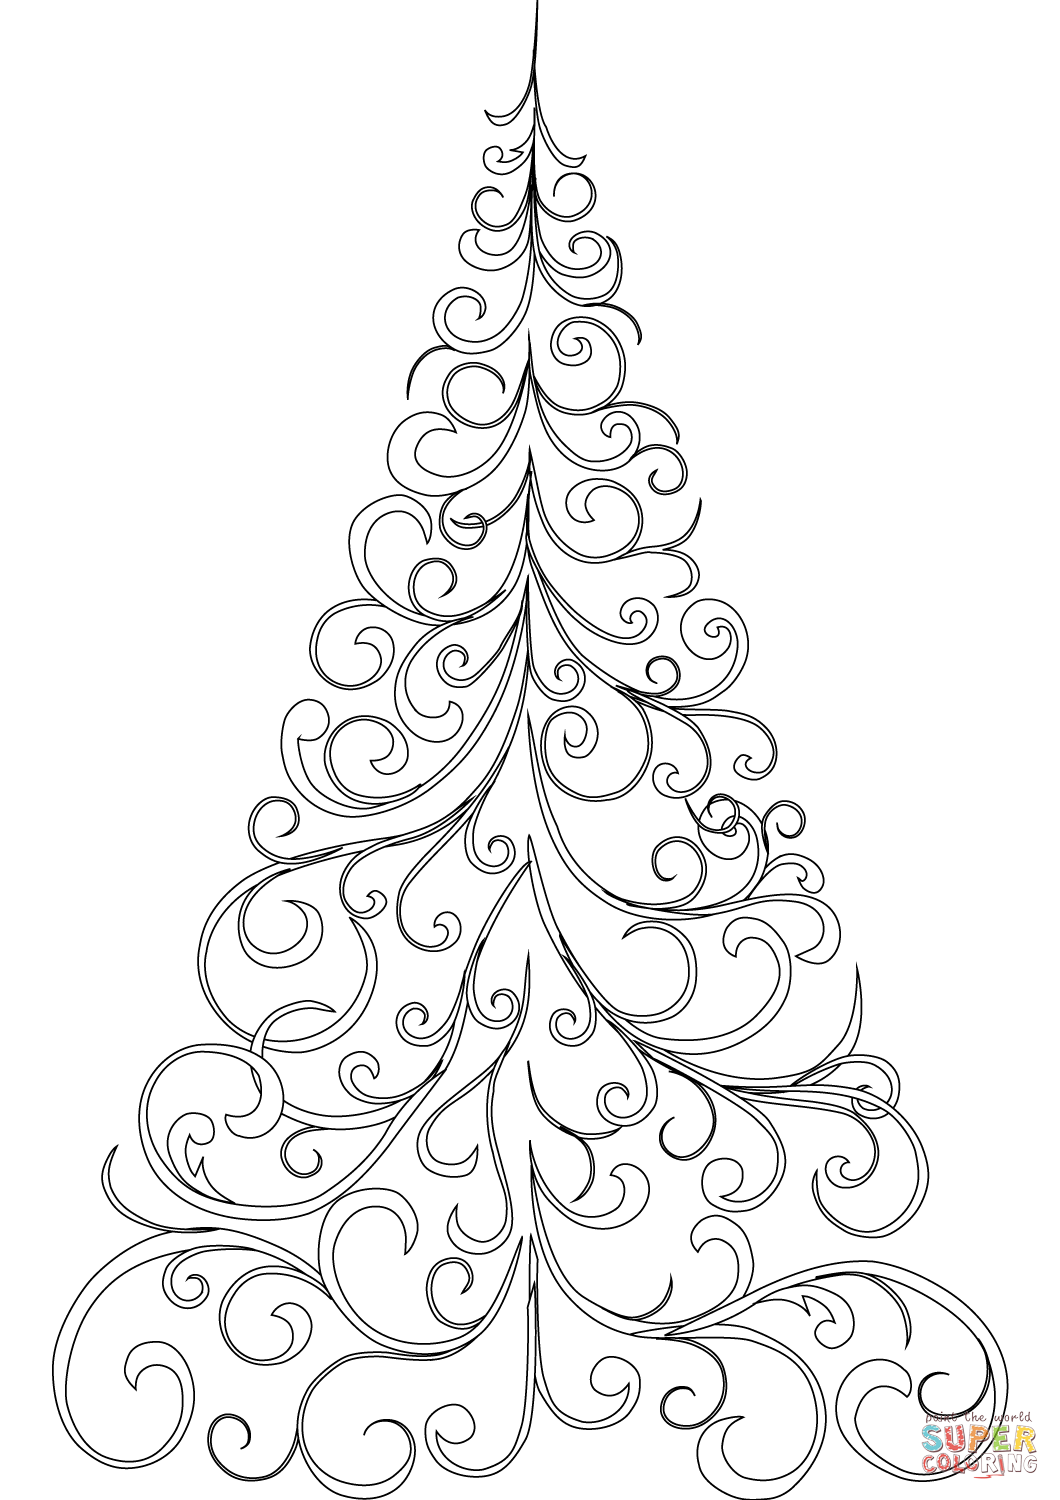 1060x1500 Swirly Christmas Tree Coloring Page Free Printable Pages Inside